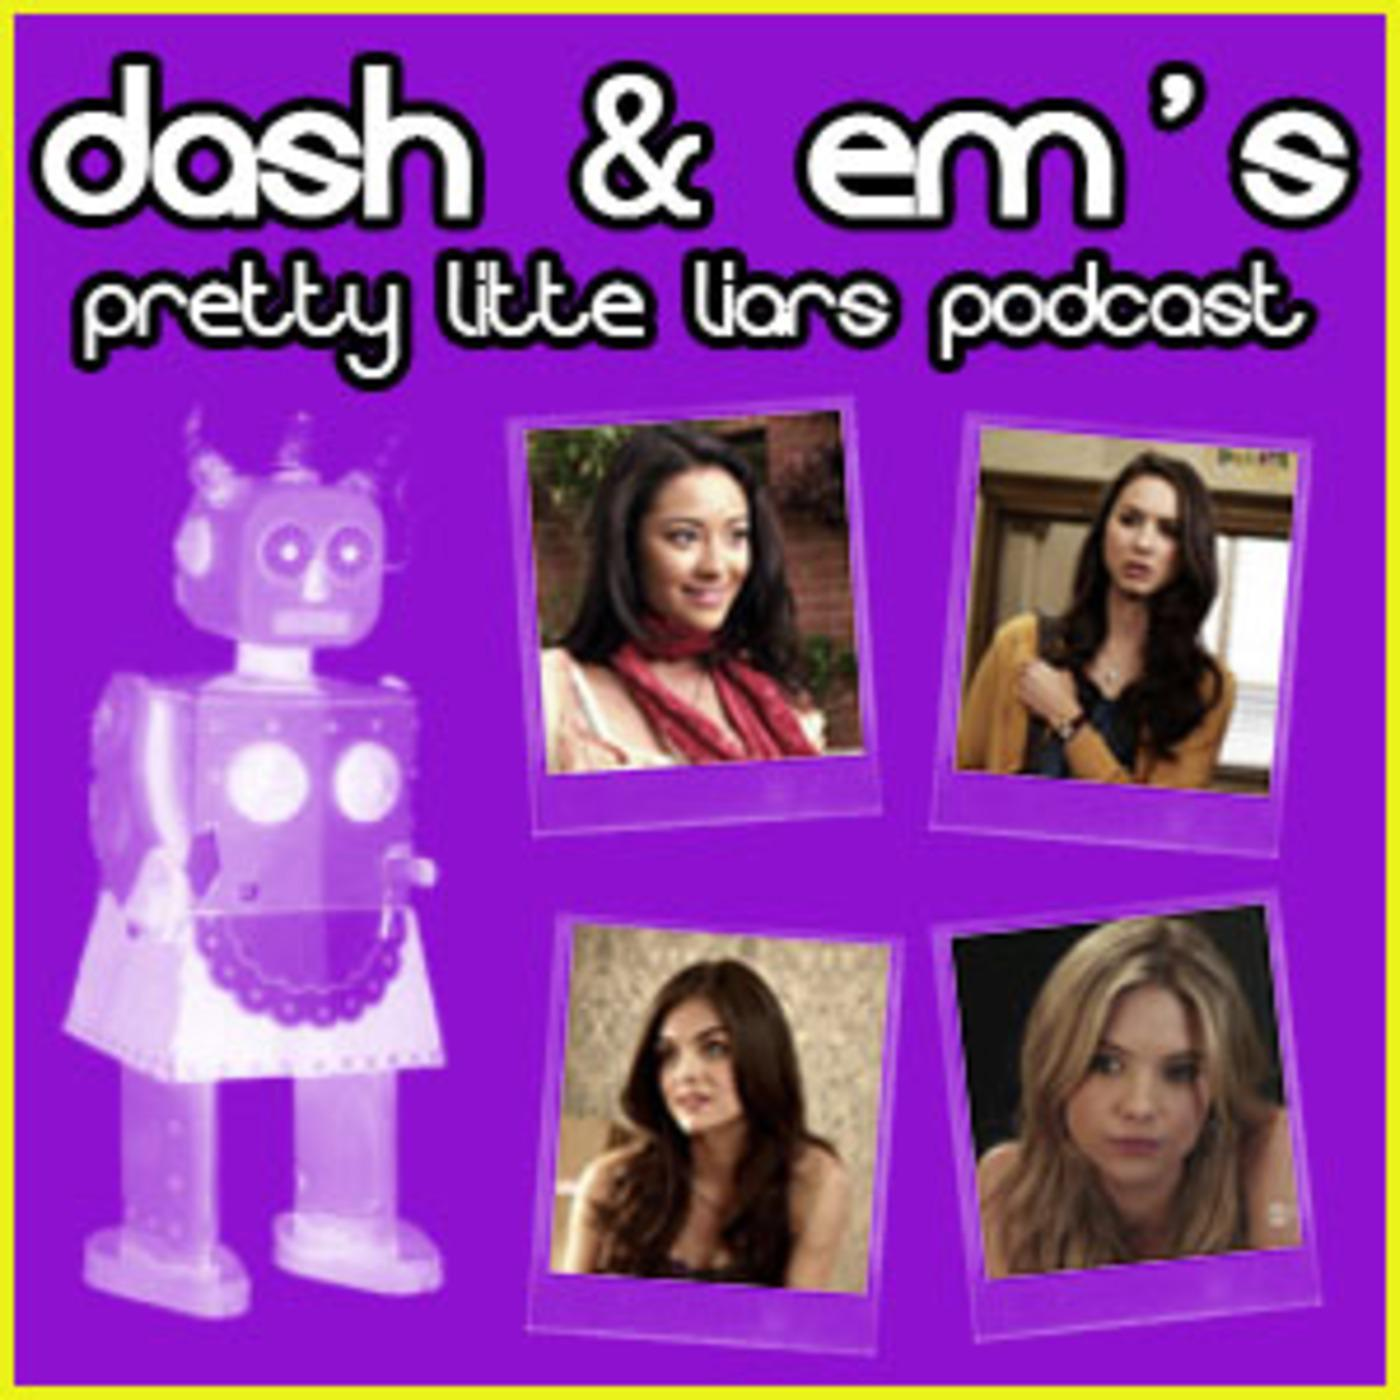 Dash & Em's Pretty Little Liars Cast (podcast) - Dash & Em